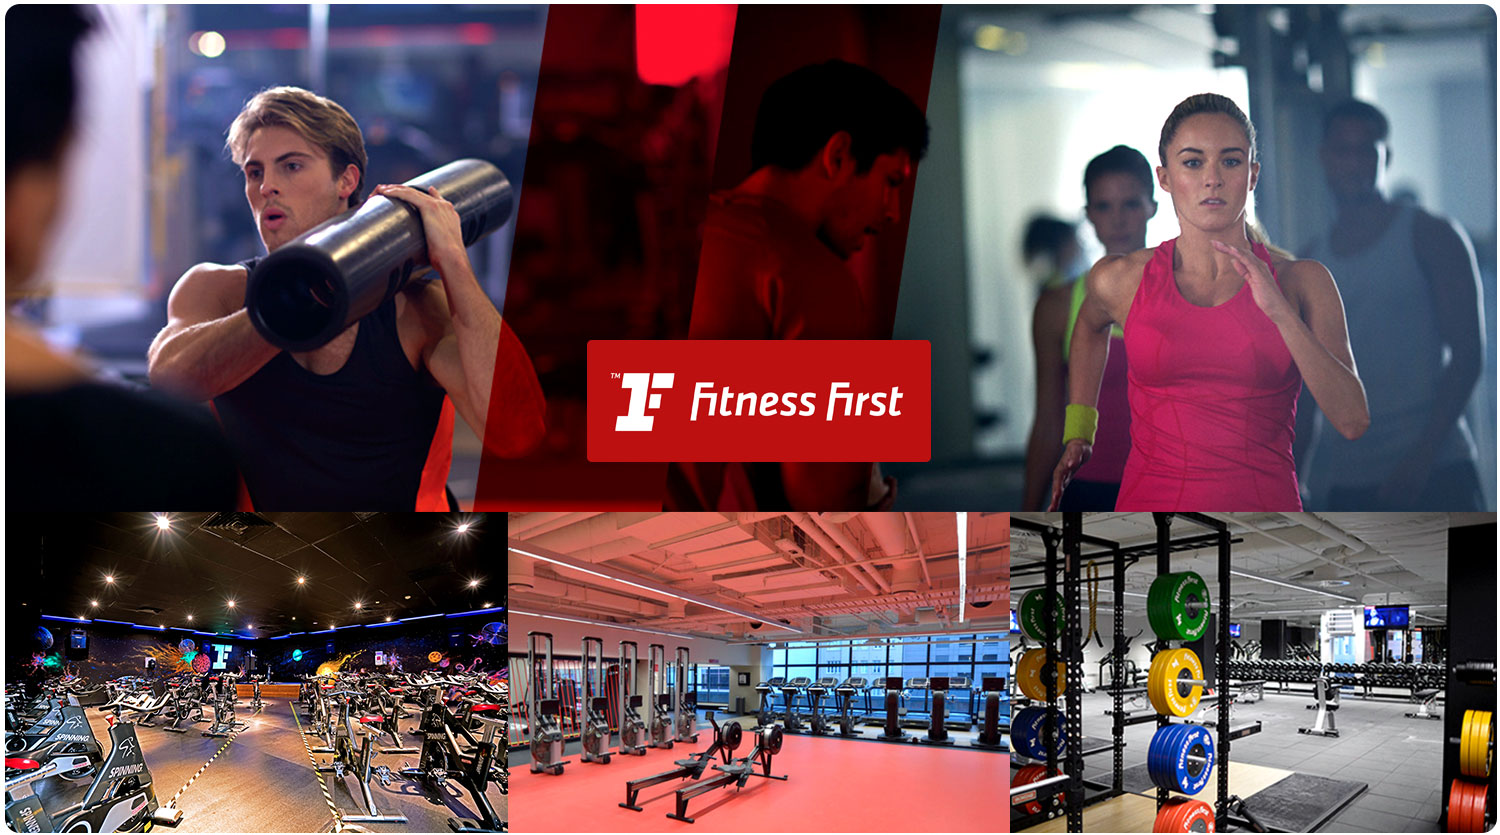 Start your Fitness Journey with Fitness First with only $14.95 for 14 days at Fitness First Melbourne VIC. Experience our first class gym and freestyle classes inc. Zumba, Pilates, Yoga, HIIT, Boxing, Les Mills and more. Take the first step with Fitness First Melbourne VIC.